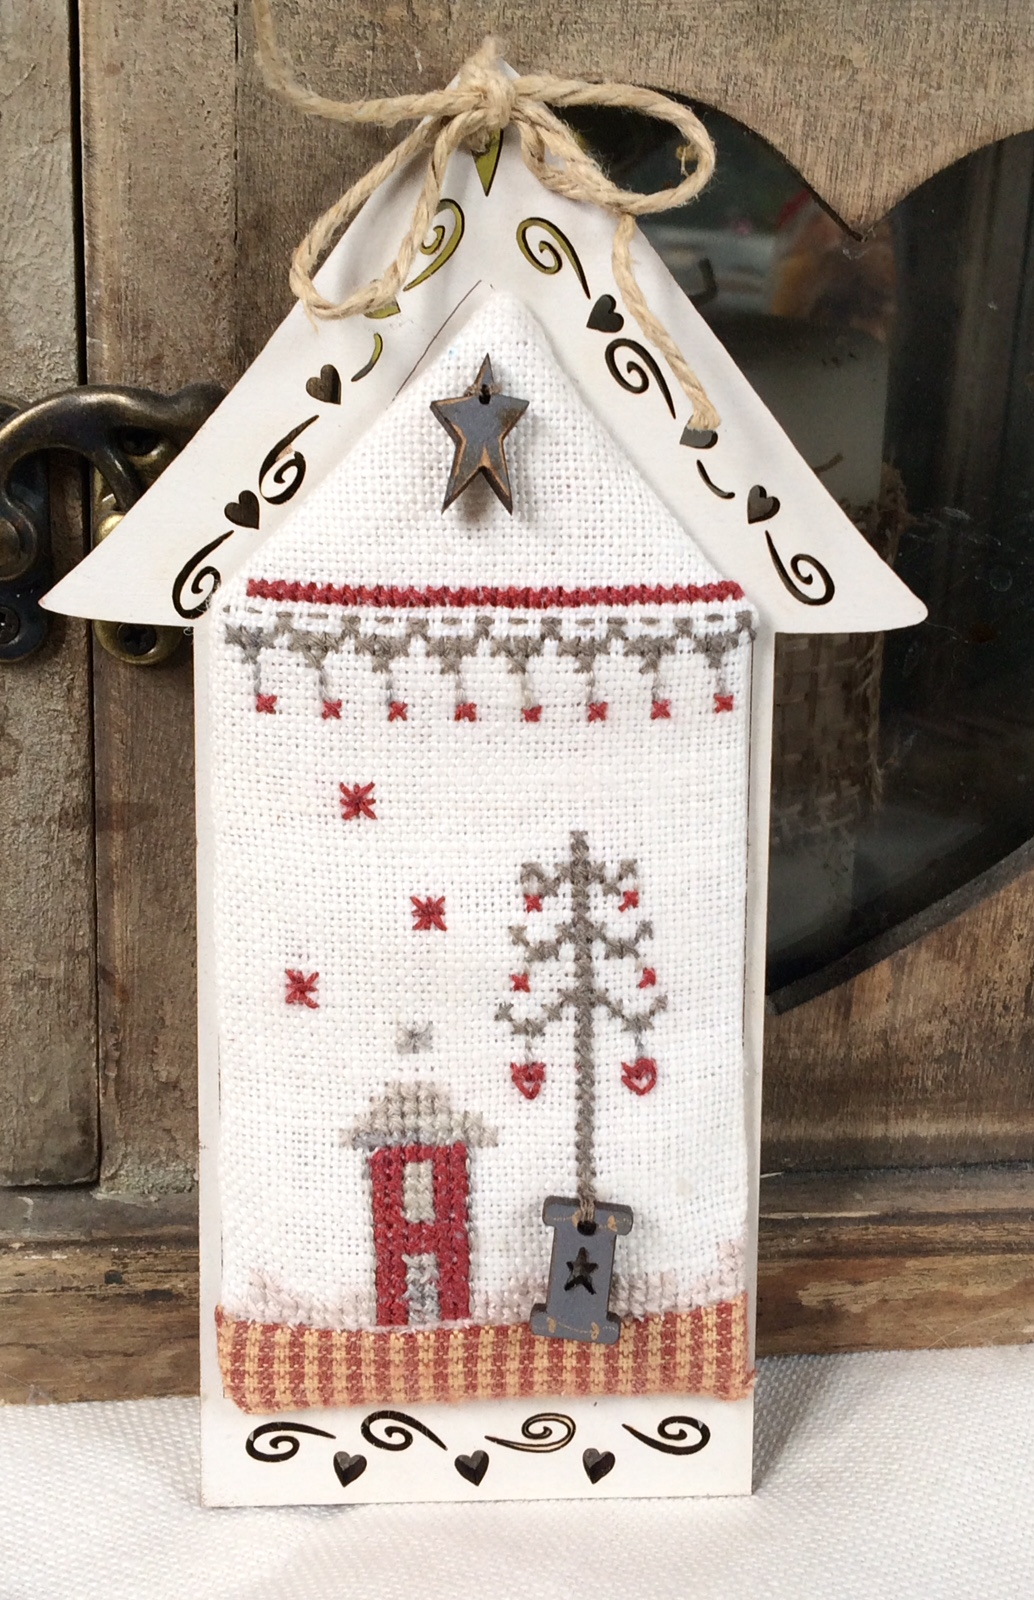 Crosstitch chart - Mini Christmas house KMAIS5